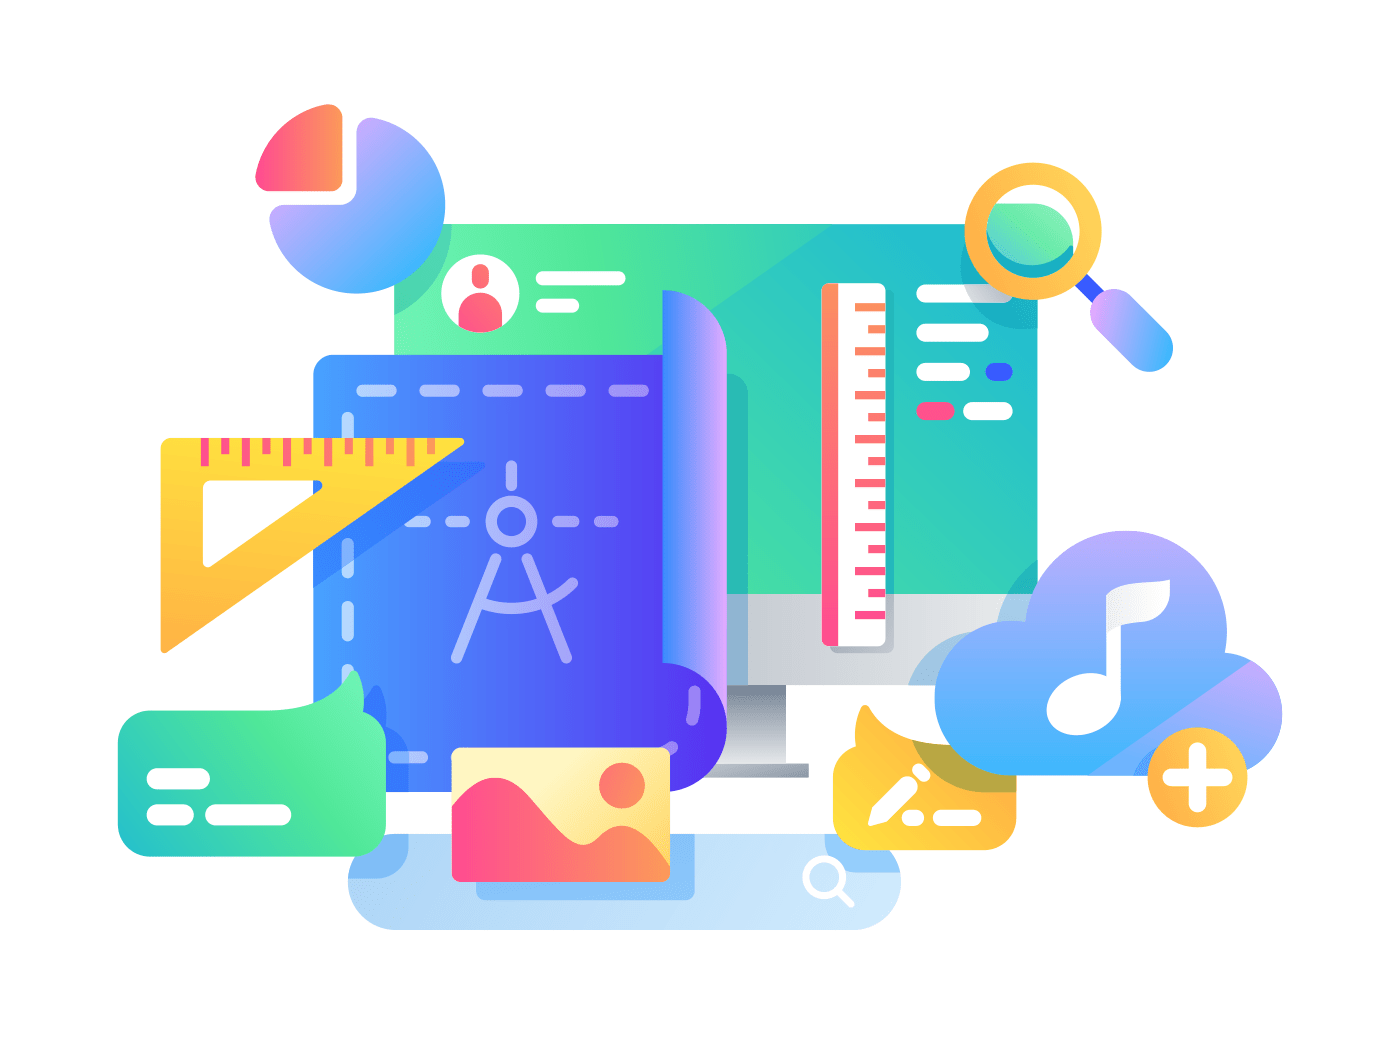 Process of creating web page design, adding service icons to application. Vector illustration